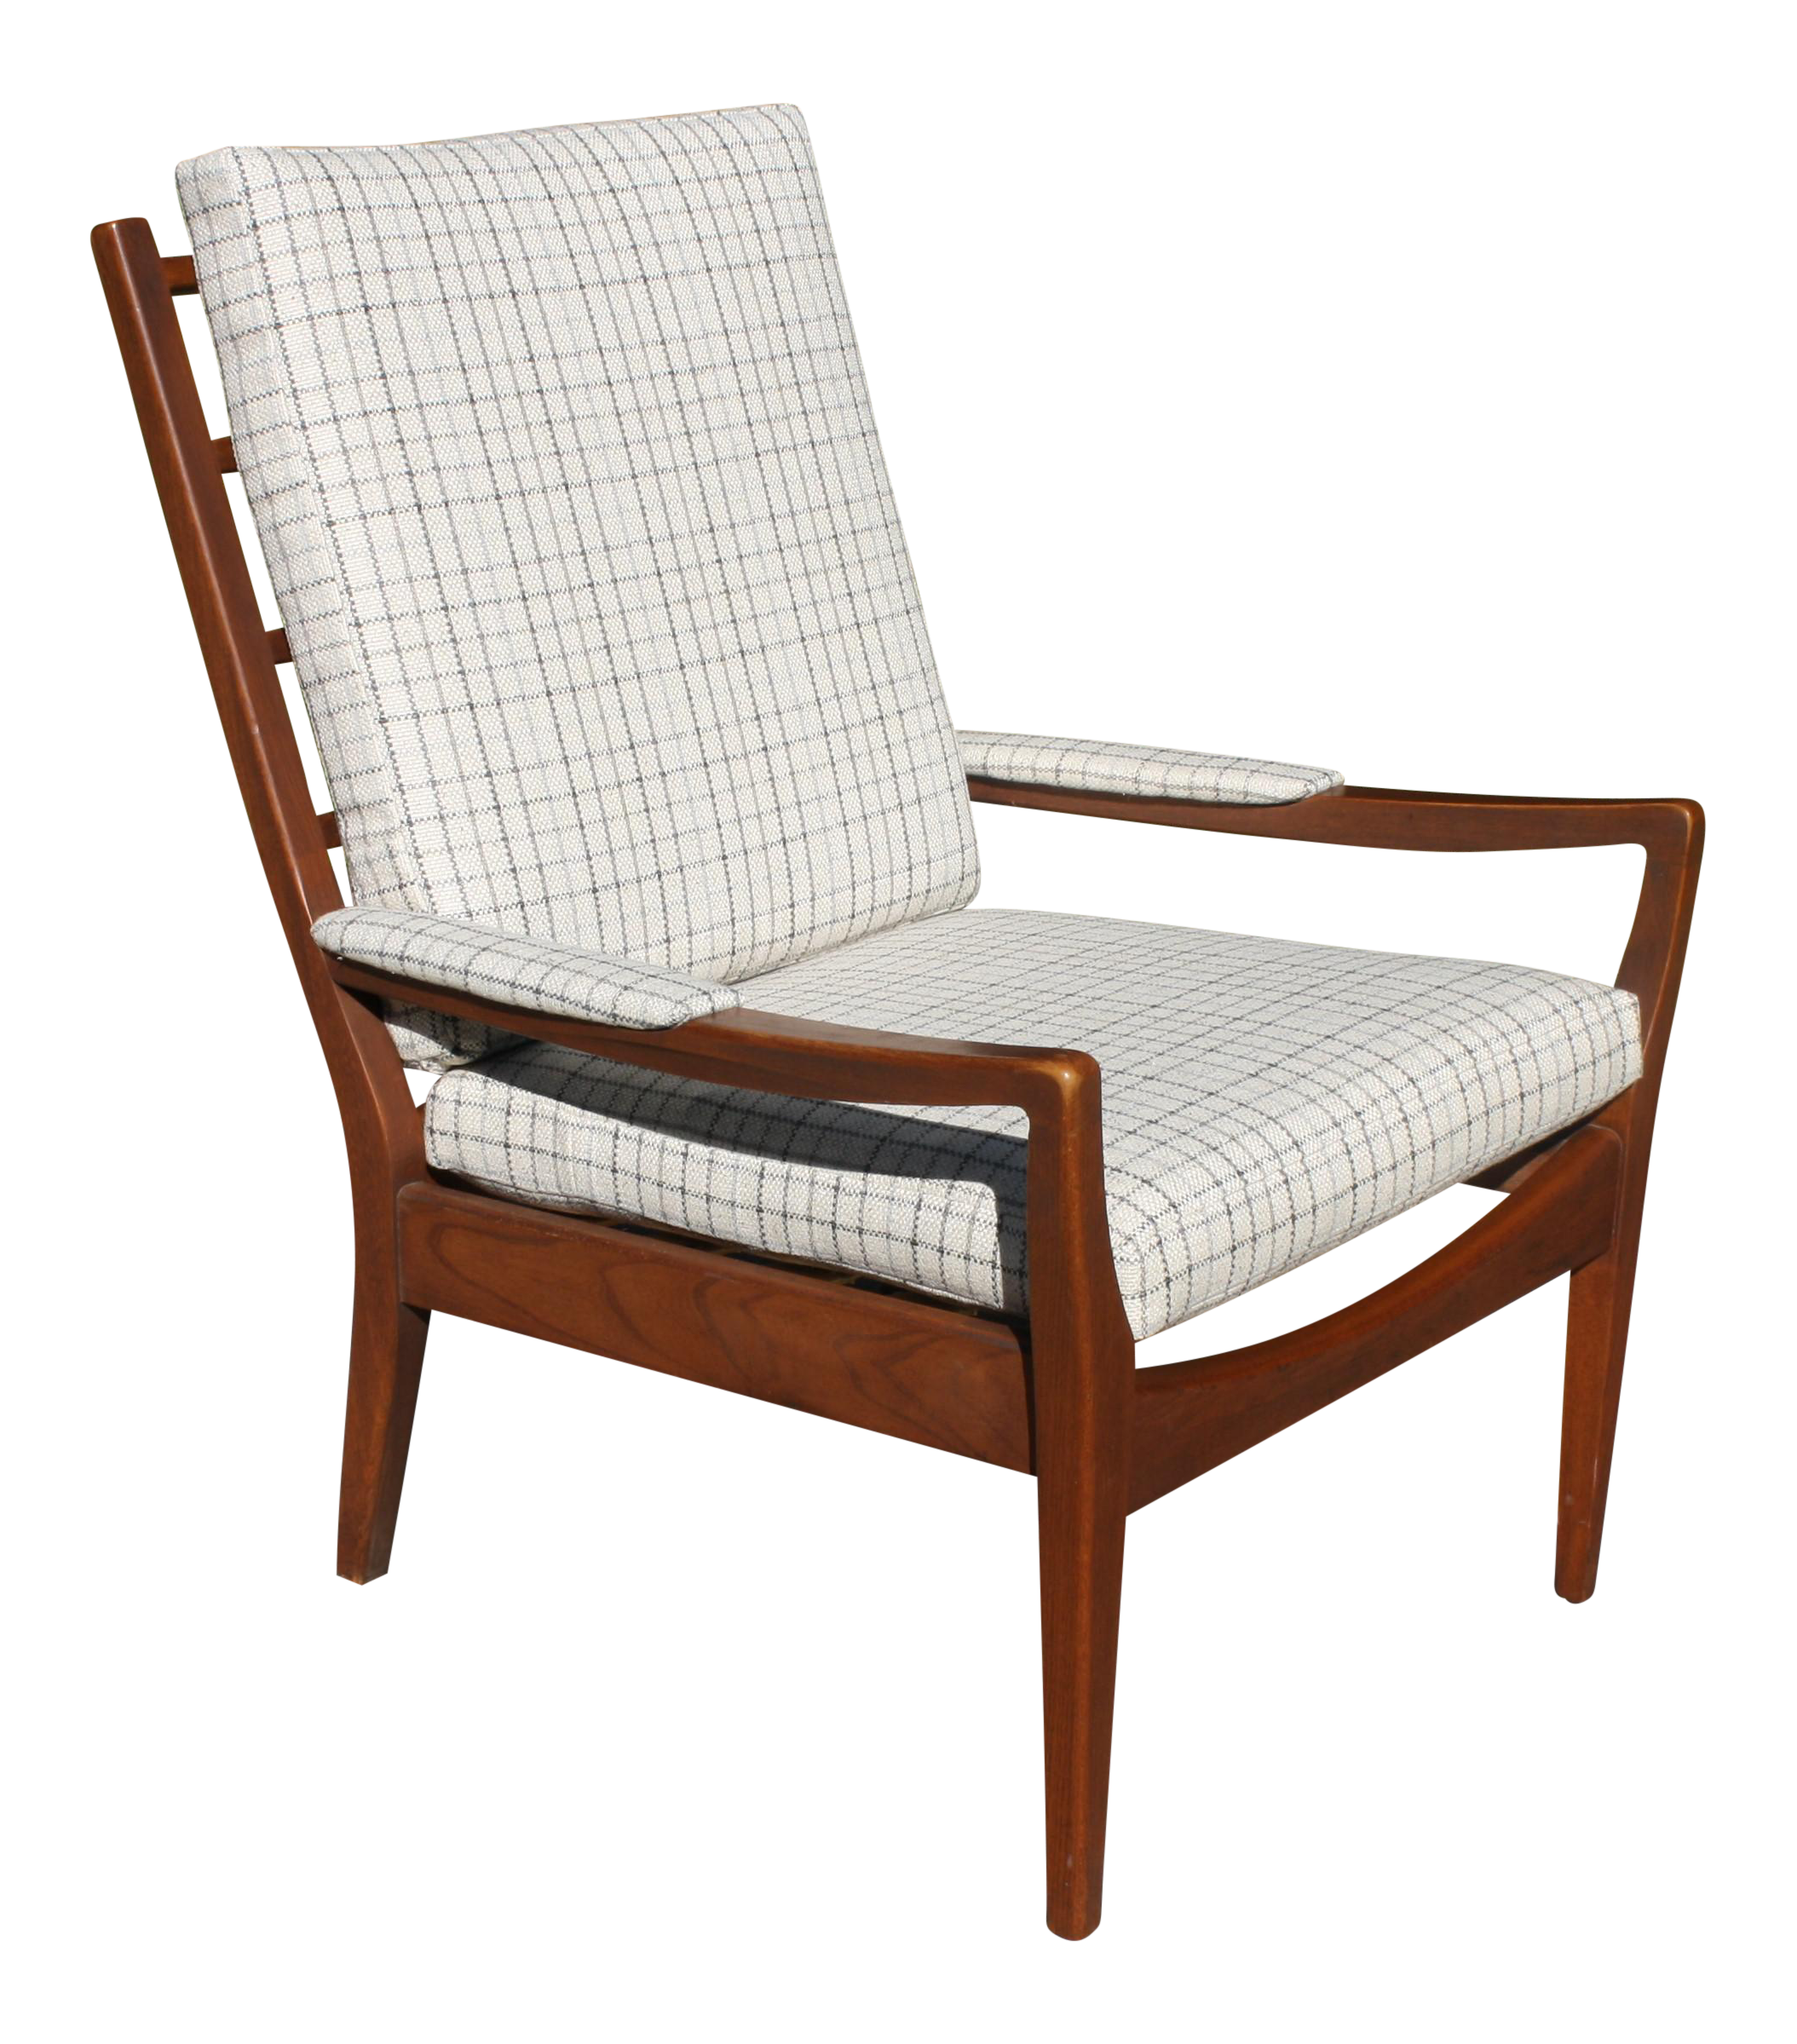 Perfect Mid Century Modern Upholstered Armchair By Paoli Chair Co. For Sale